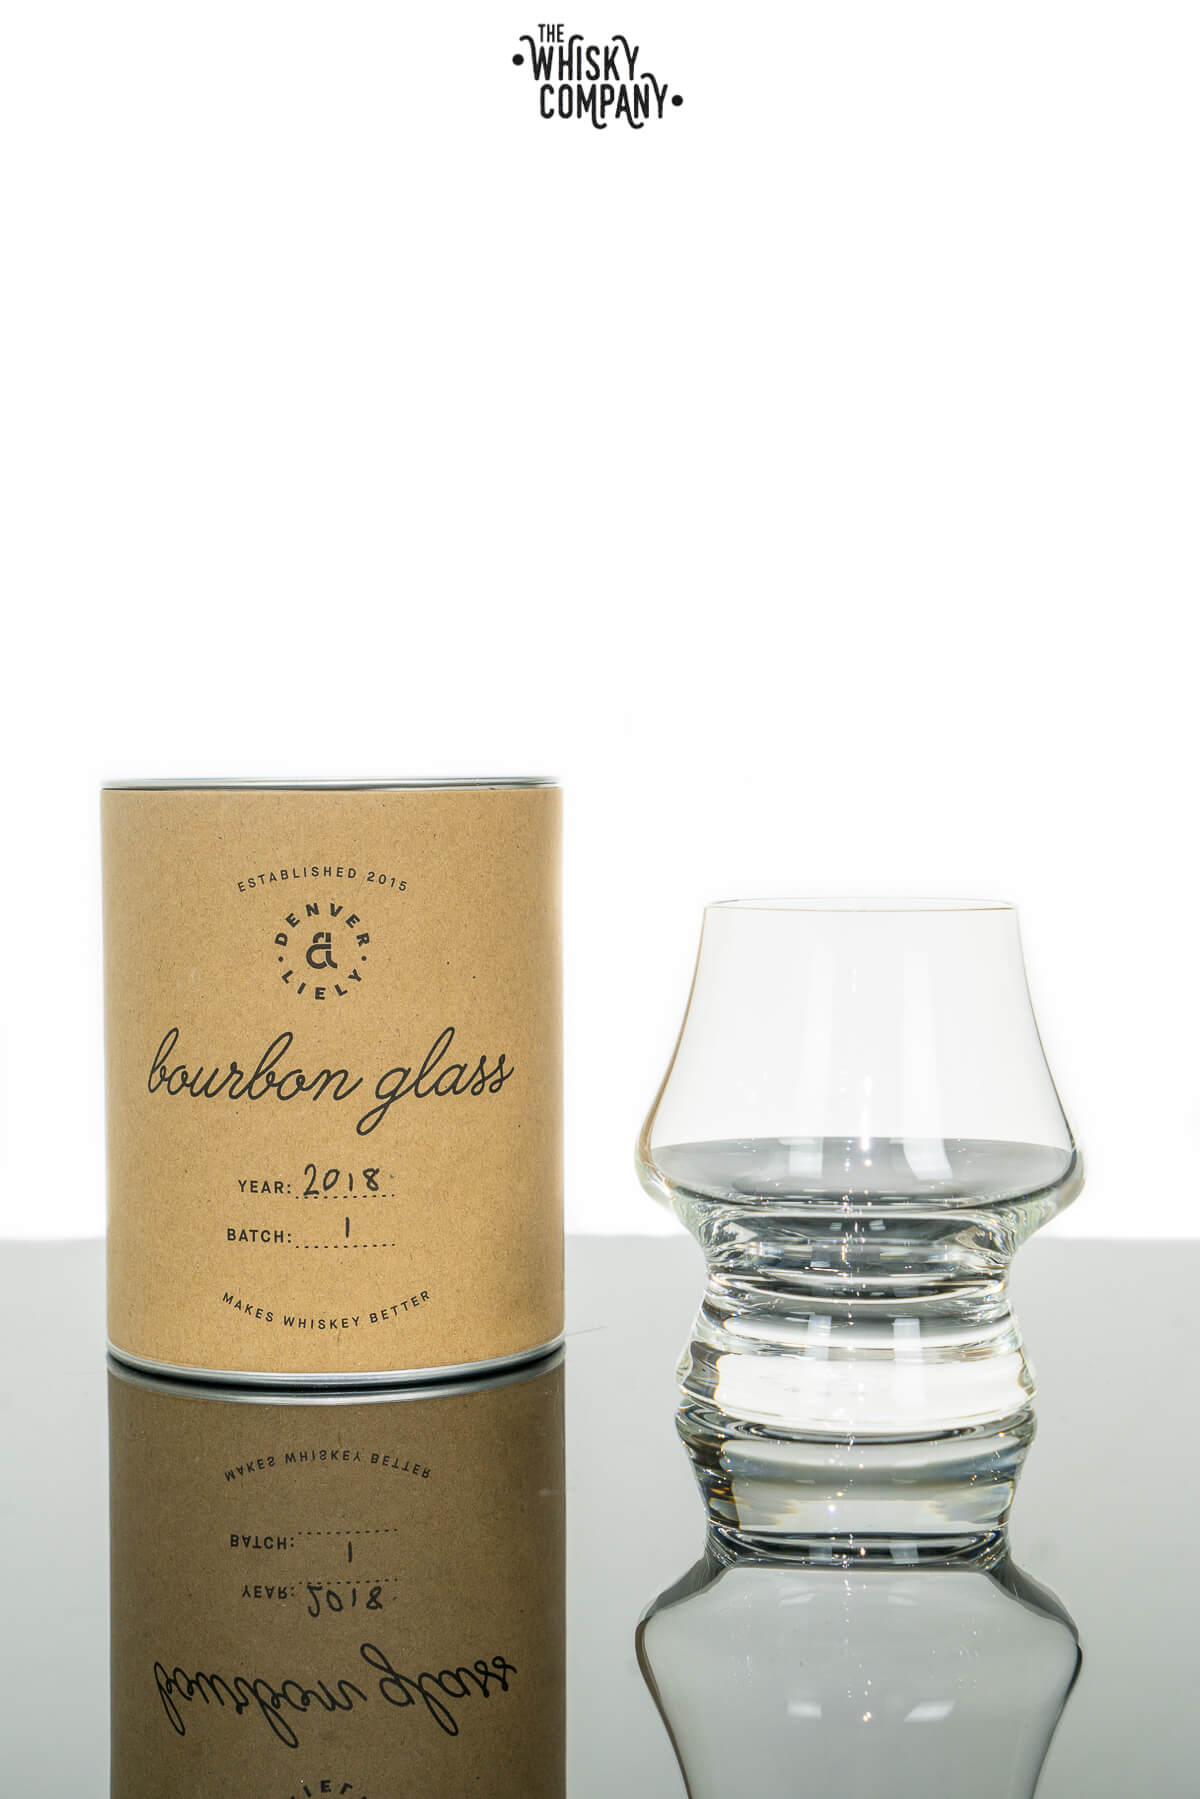 Denver & Liely Bourbon Glass Batch #1